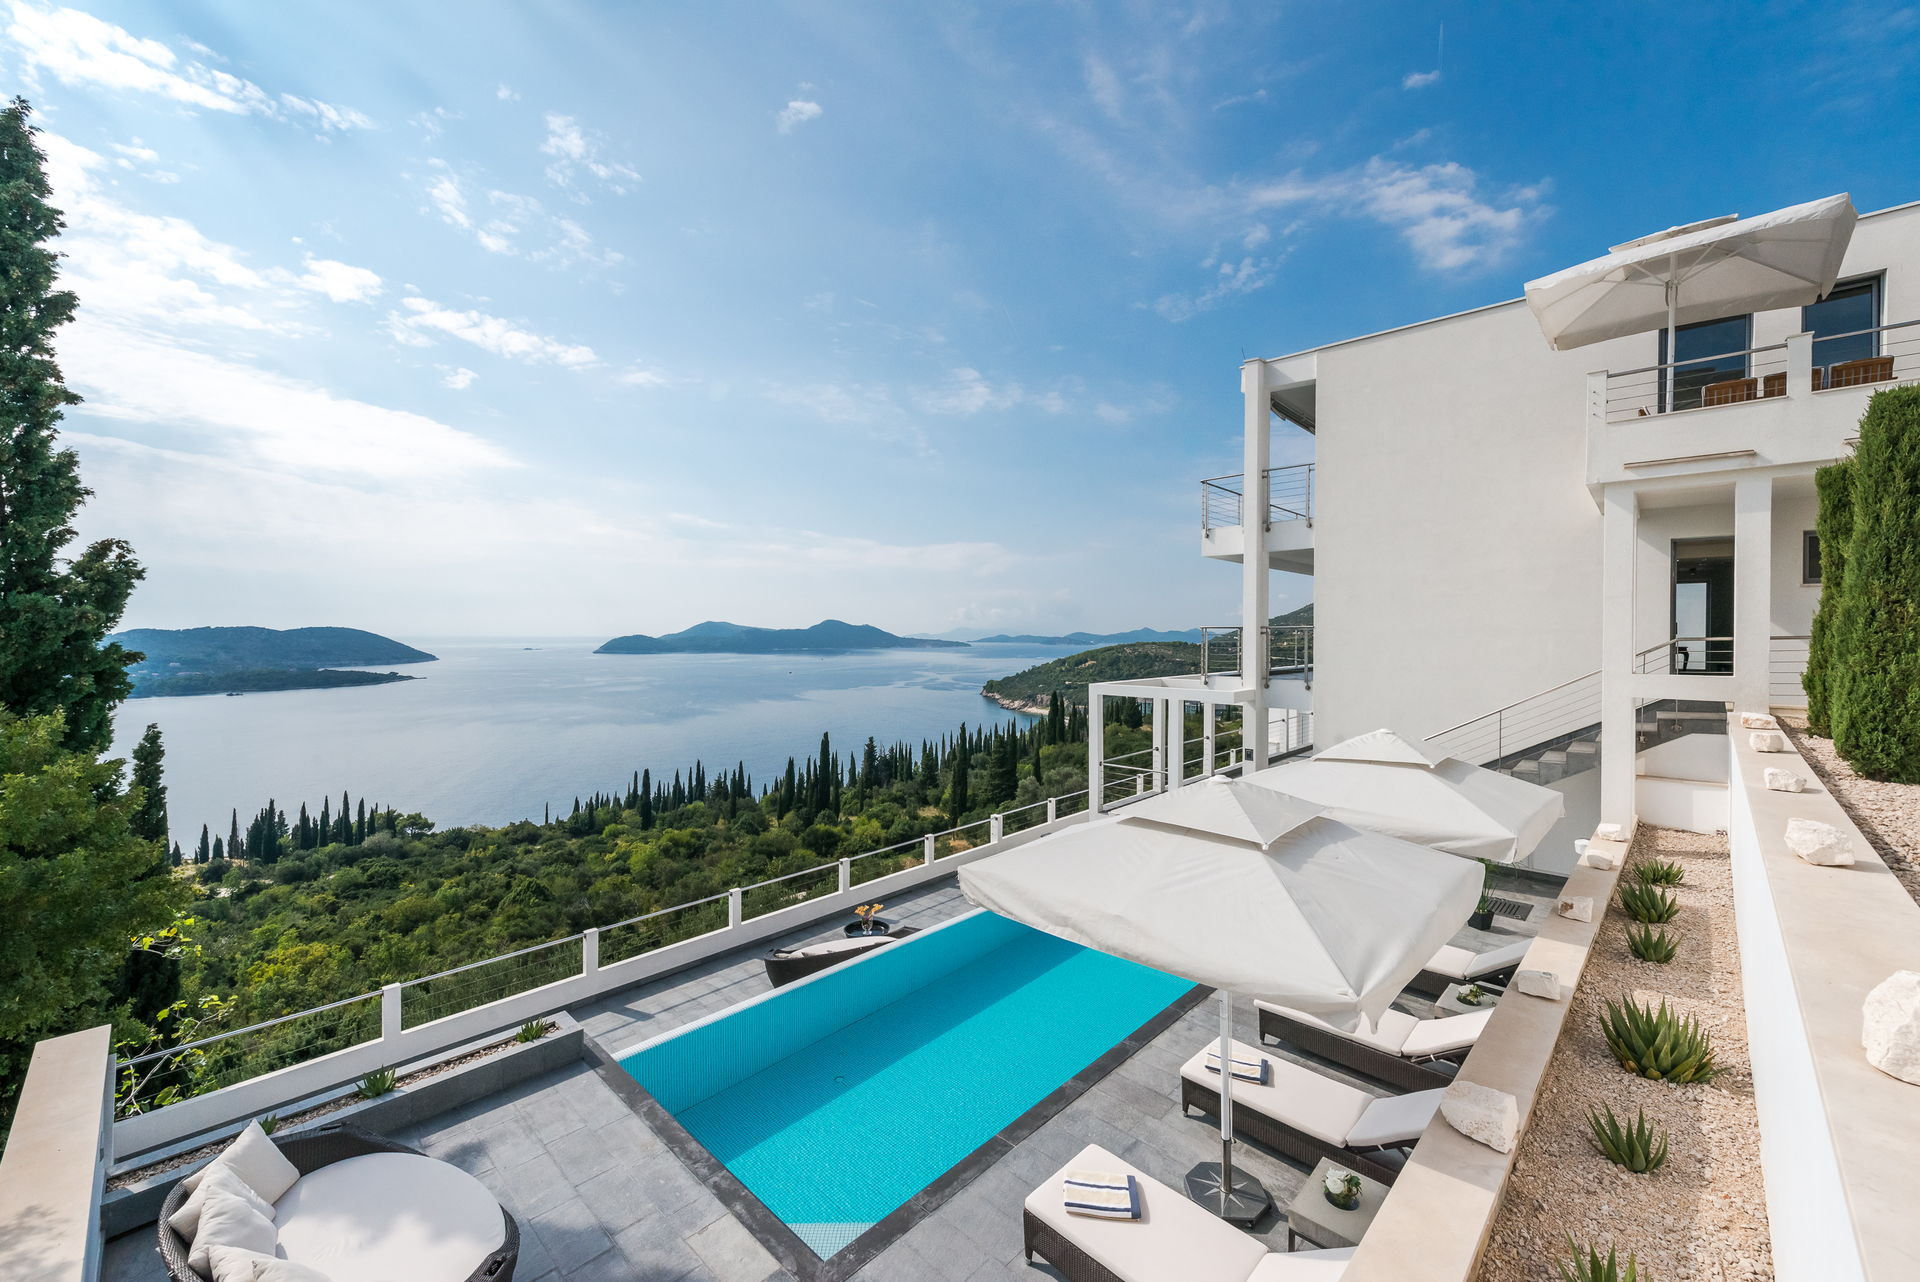 Luxury Villa Palace of Dreams with Swimming Pool